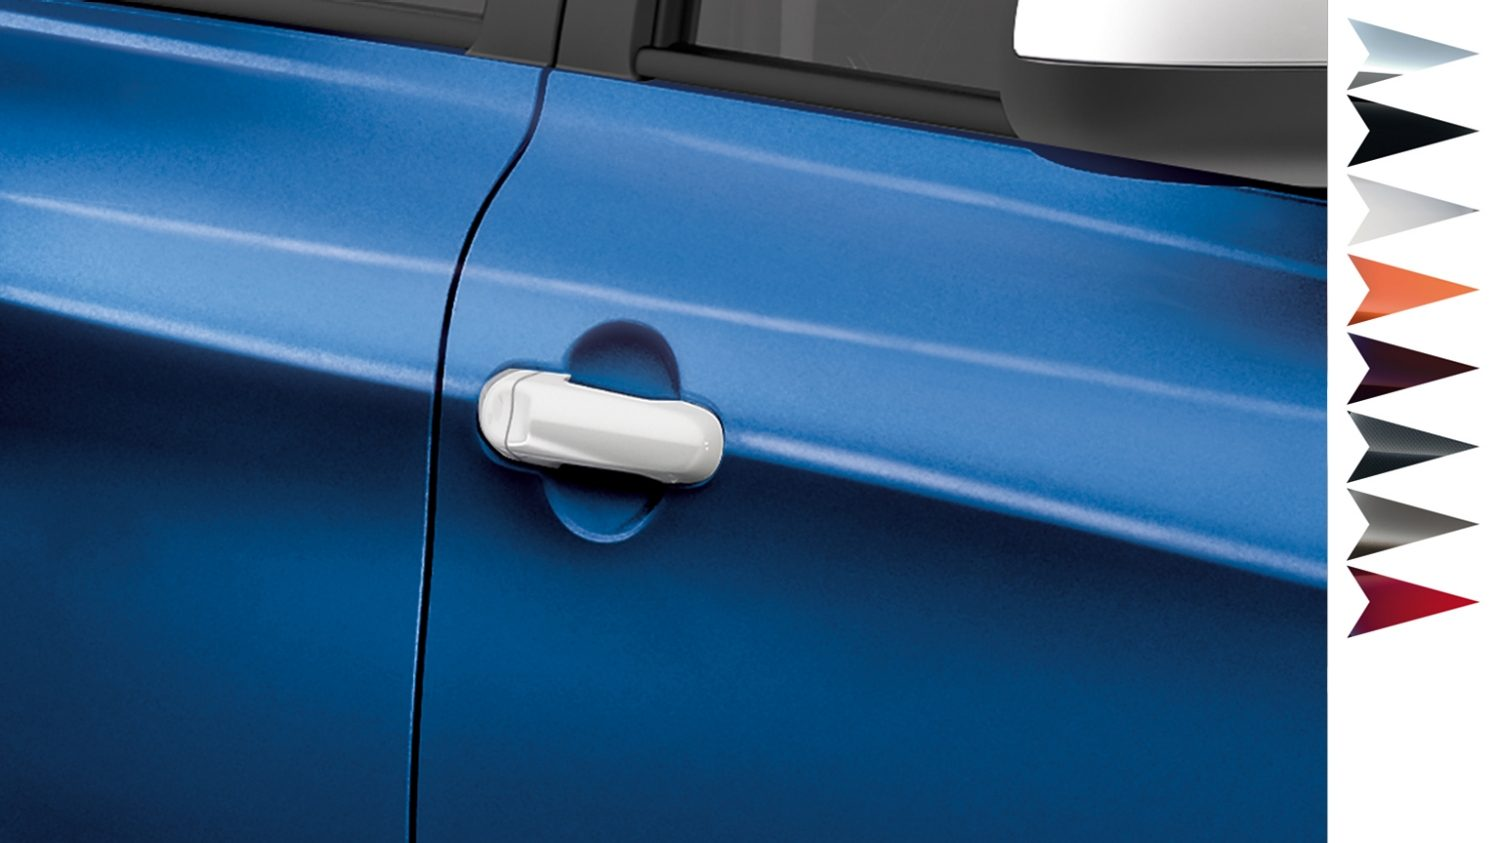 Nissan Micra - Personalisation - Door handle covers London white